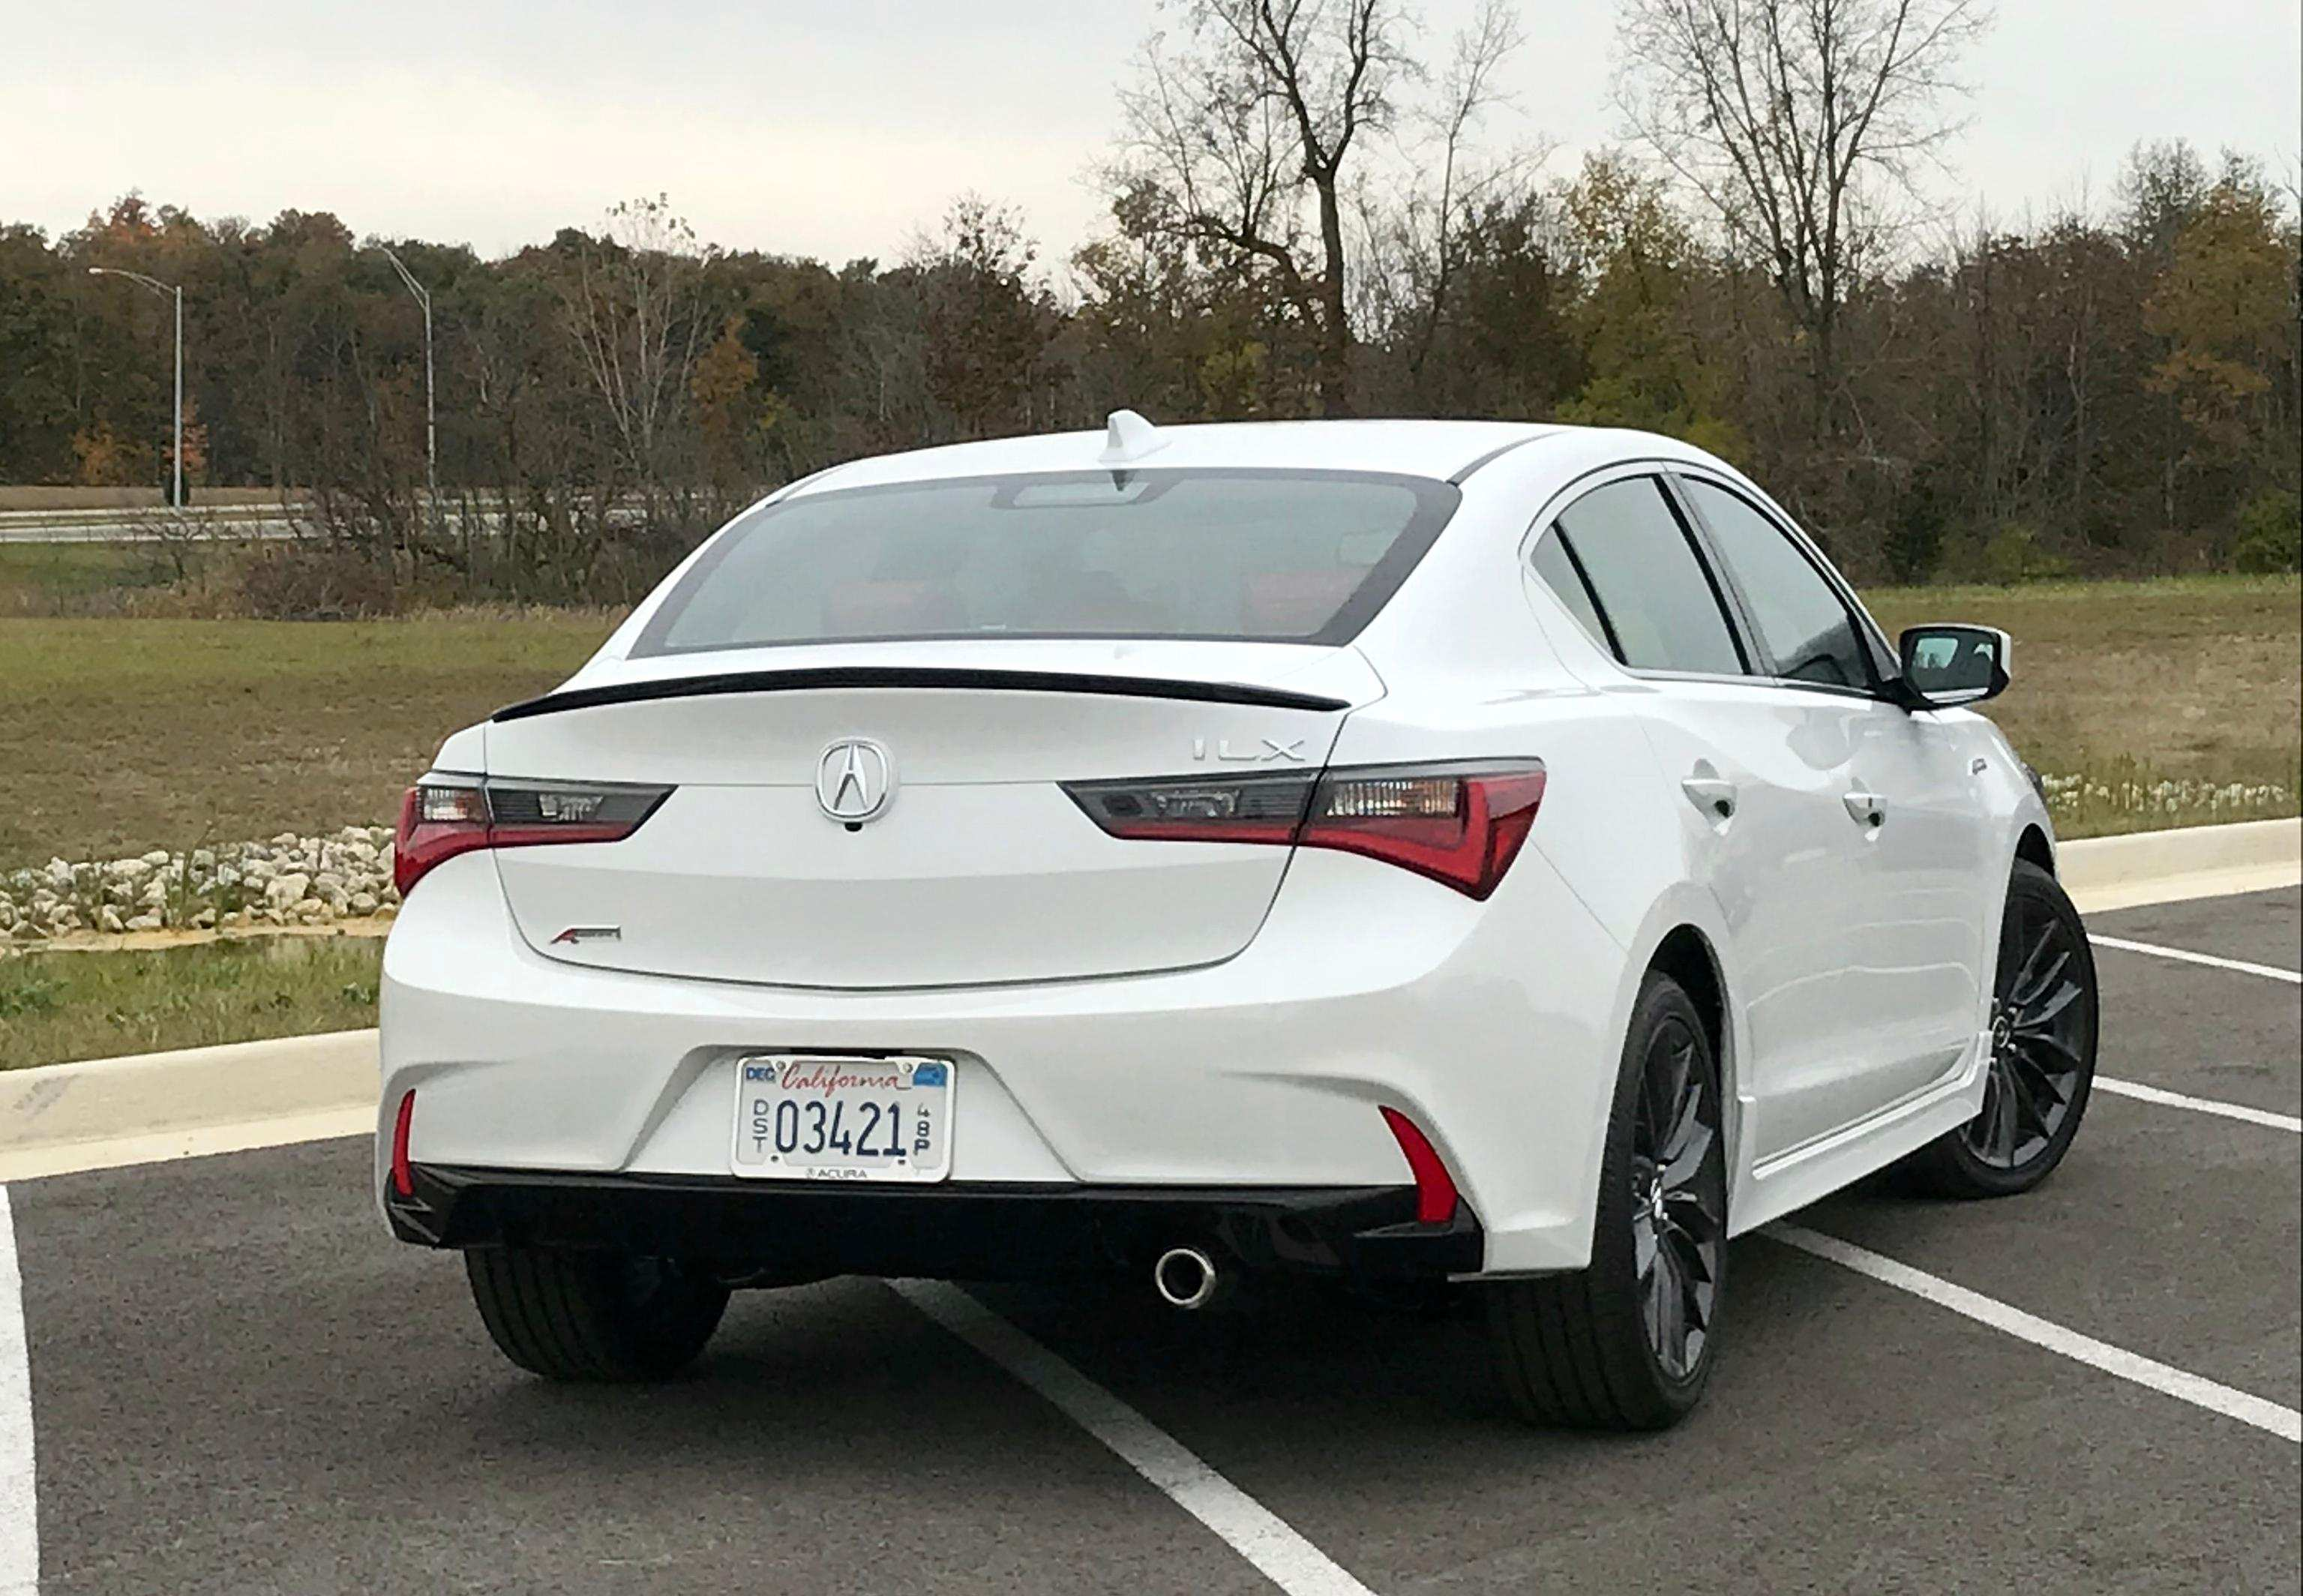 37 All New 2019 Acura Ilx Picture with 2019 Acura Ilx